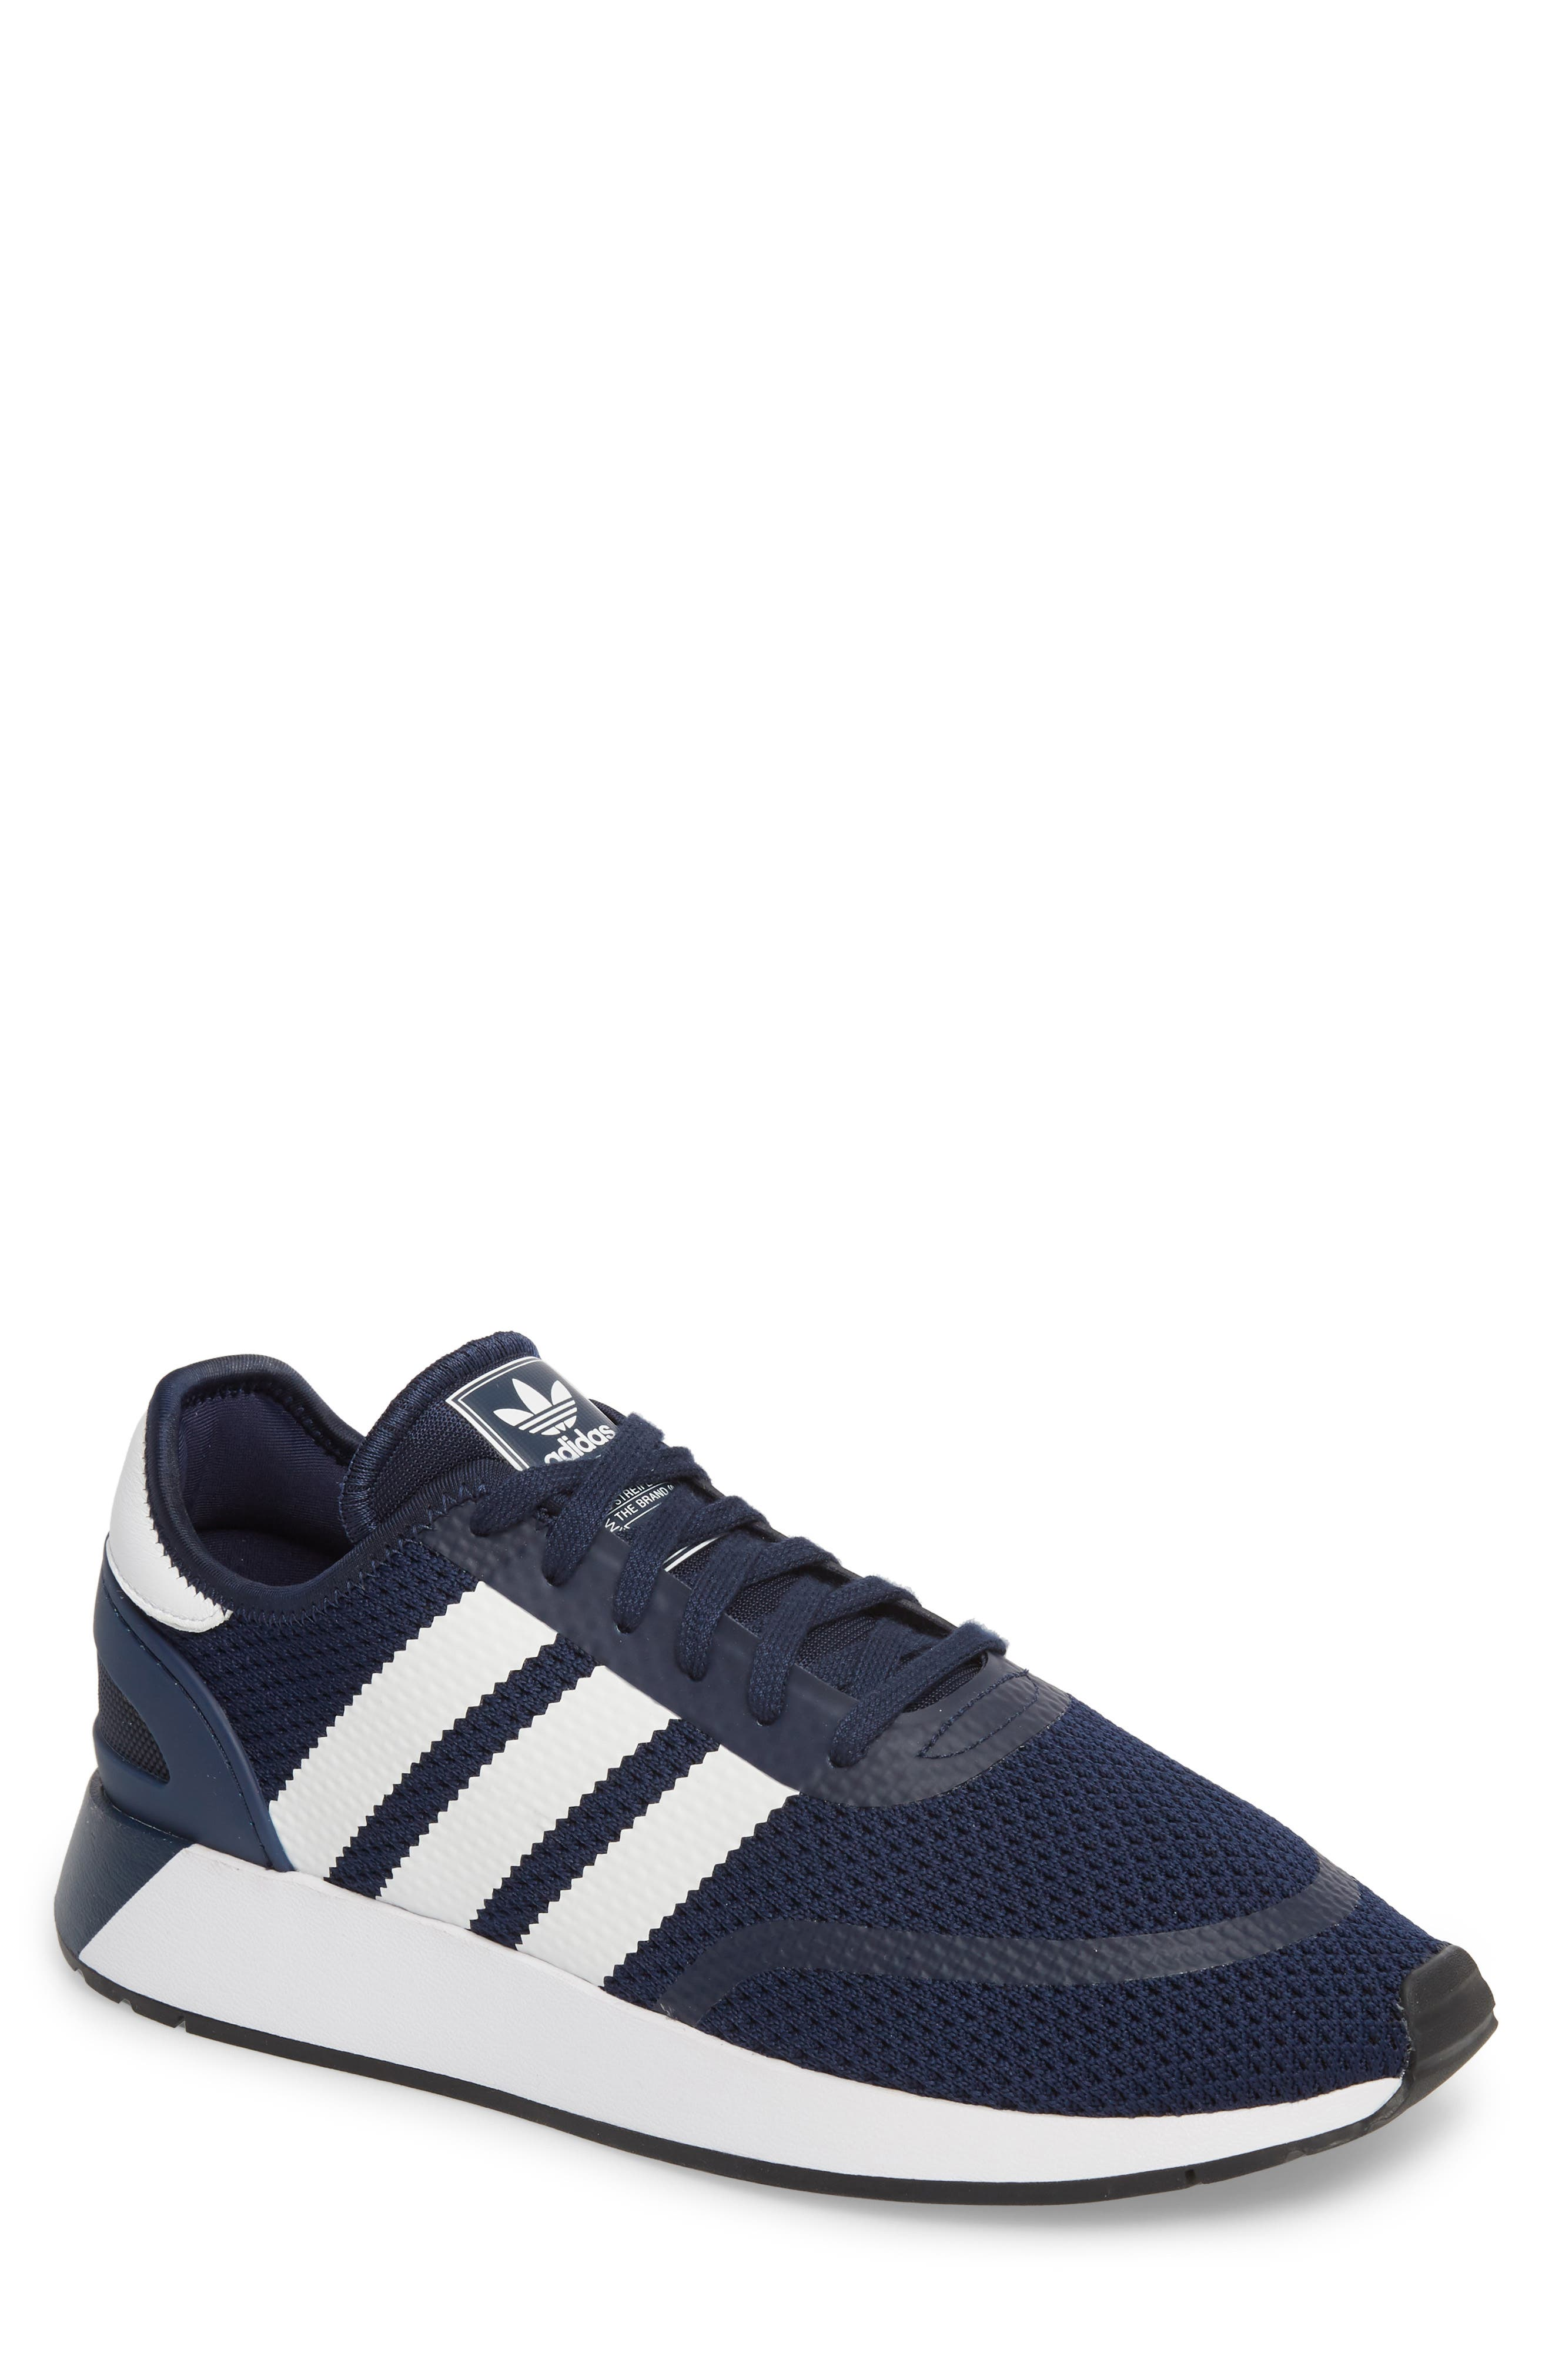 N-5923 Sneaker,                         Main,                         color, NAVY/ WHITE/ CORE BLACK